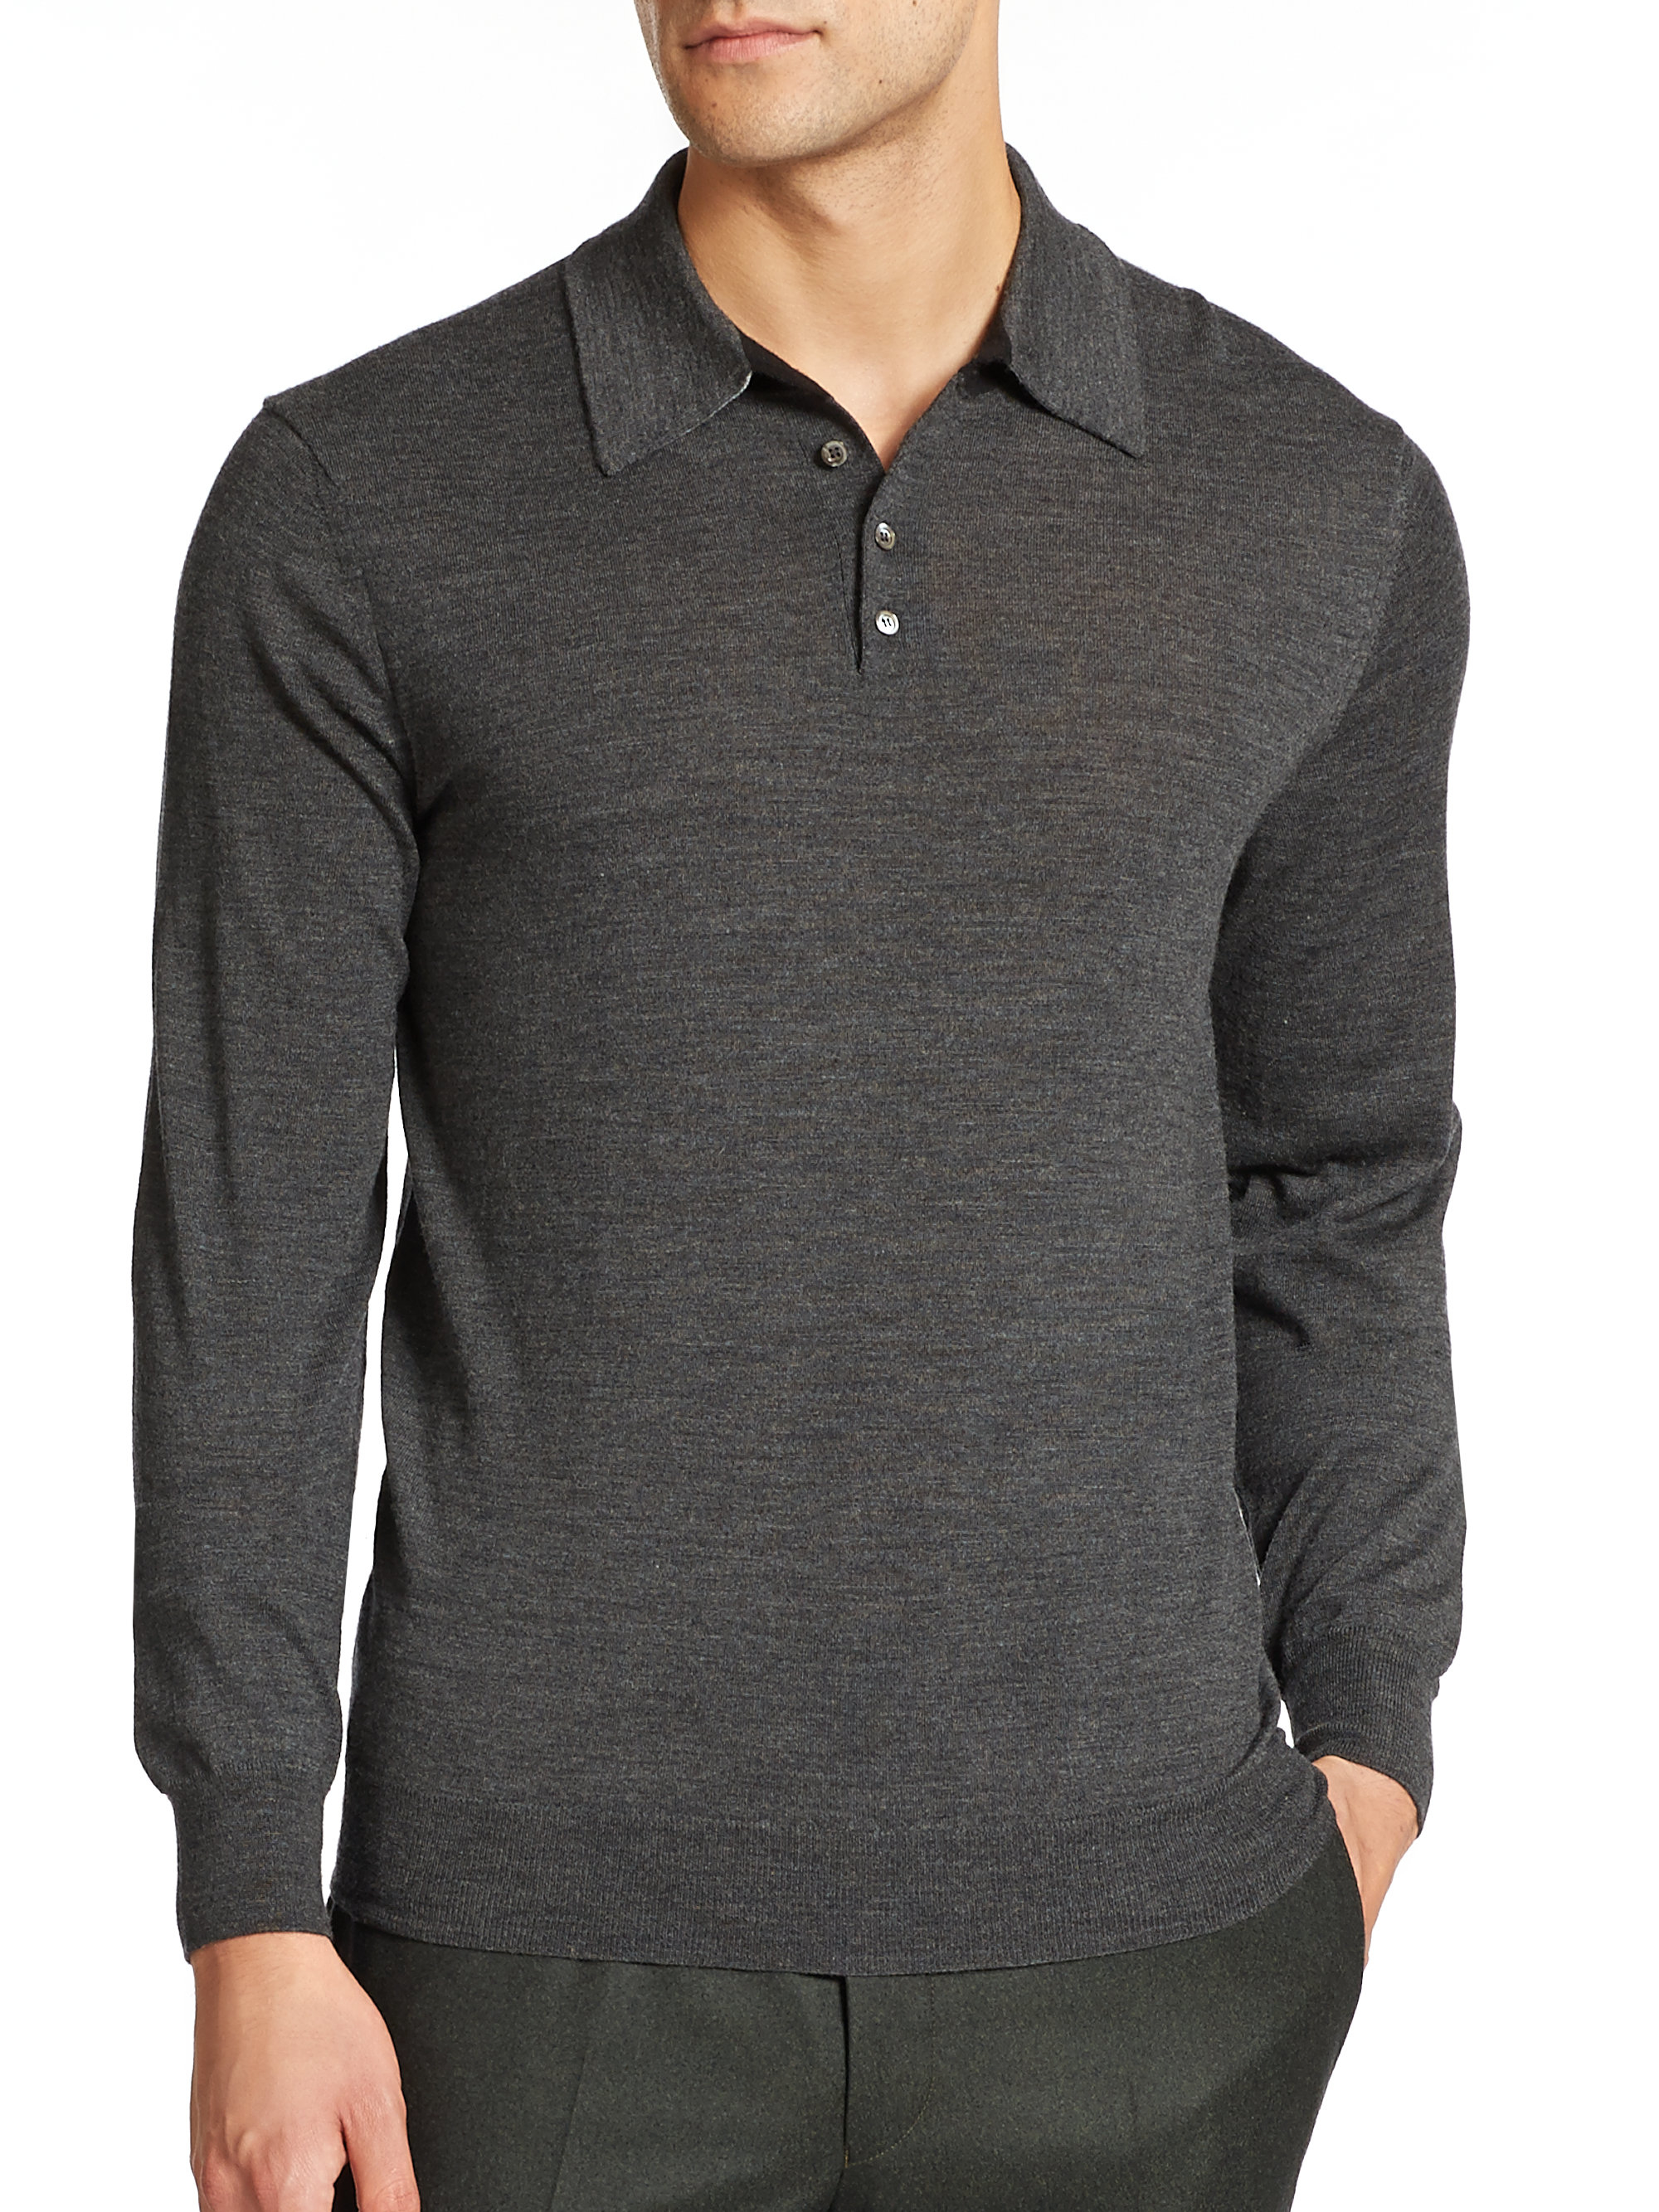 Saks fifth avenue merino wool long sleeved polo in gray for Long sleeve wool polo shirts